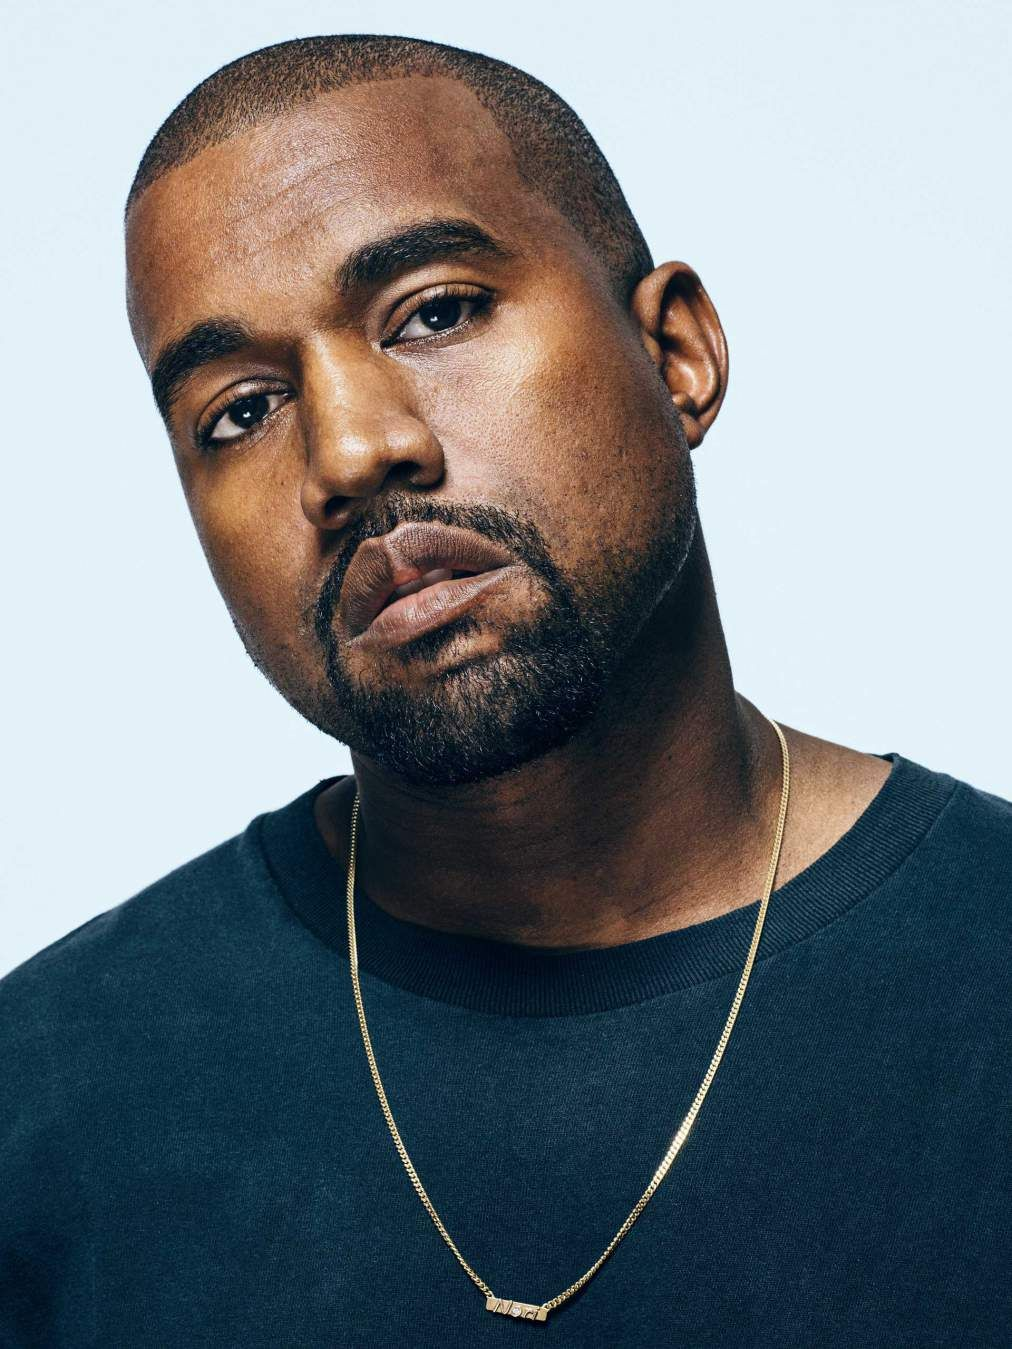 Kanye West The World S 100 Most Influential People Kanye West Kanye Kanye West Style